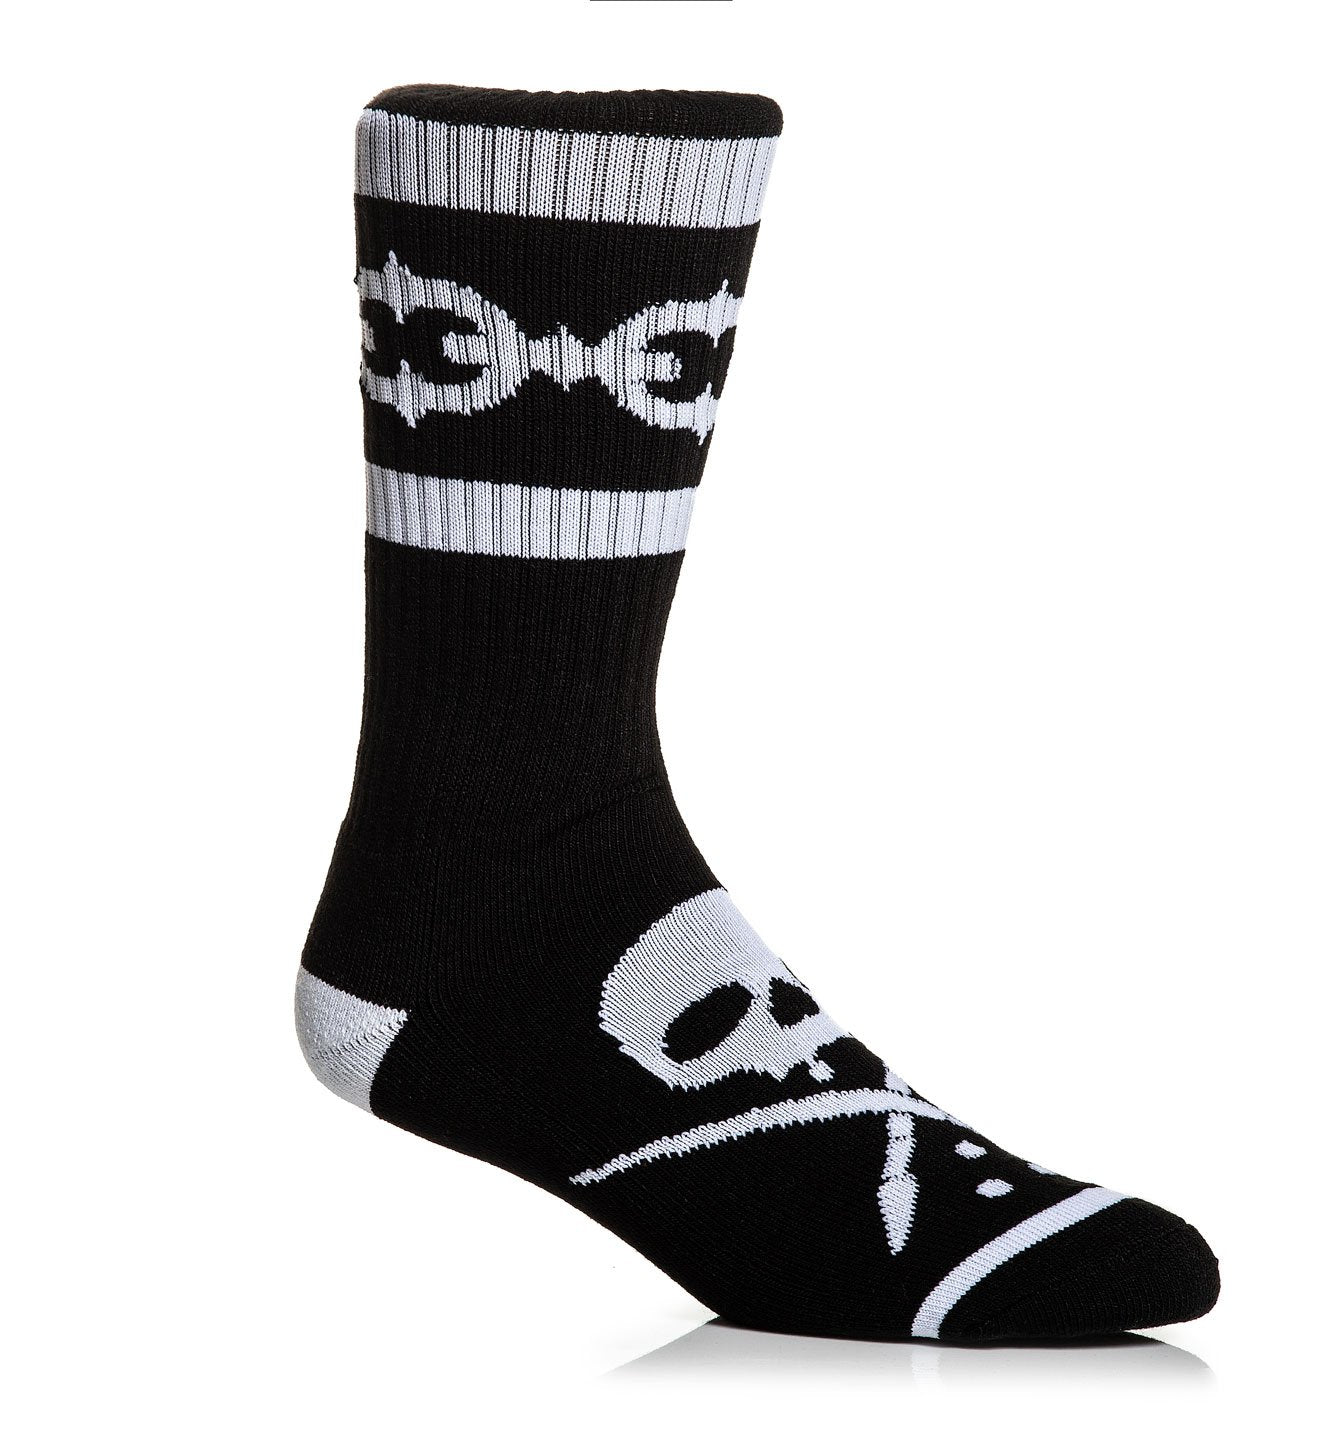 LINKED SOCKS